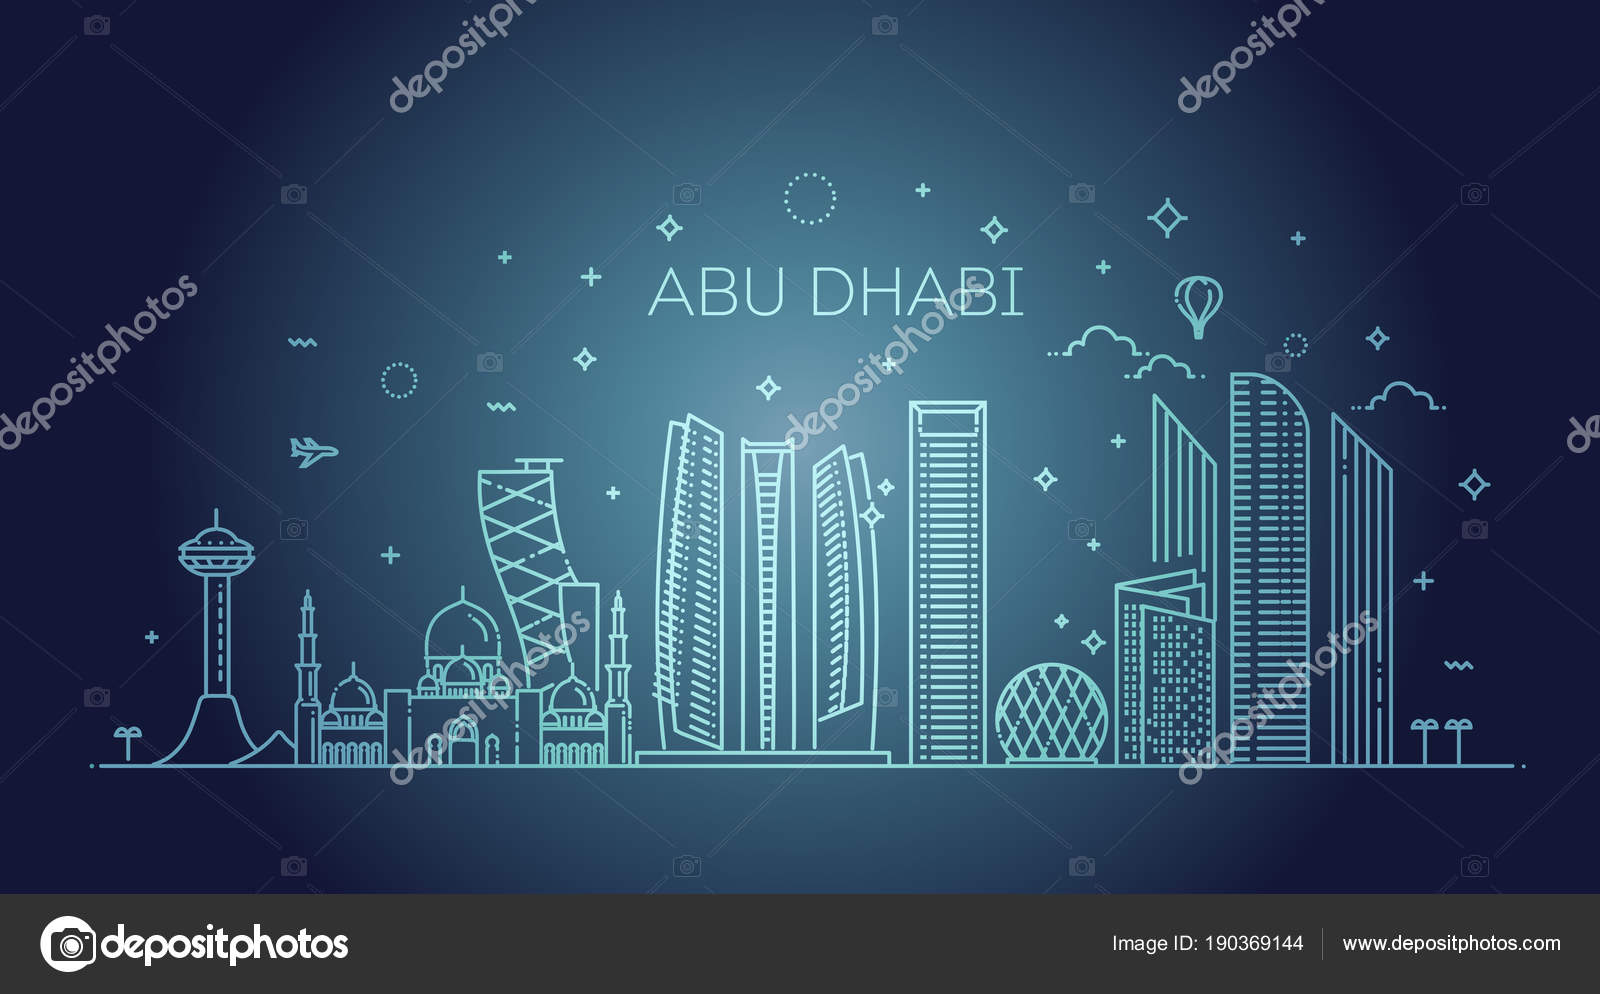 Famous Line Art : Abu dhabi city line art vector illustration with all famous